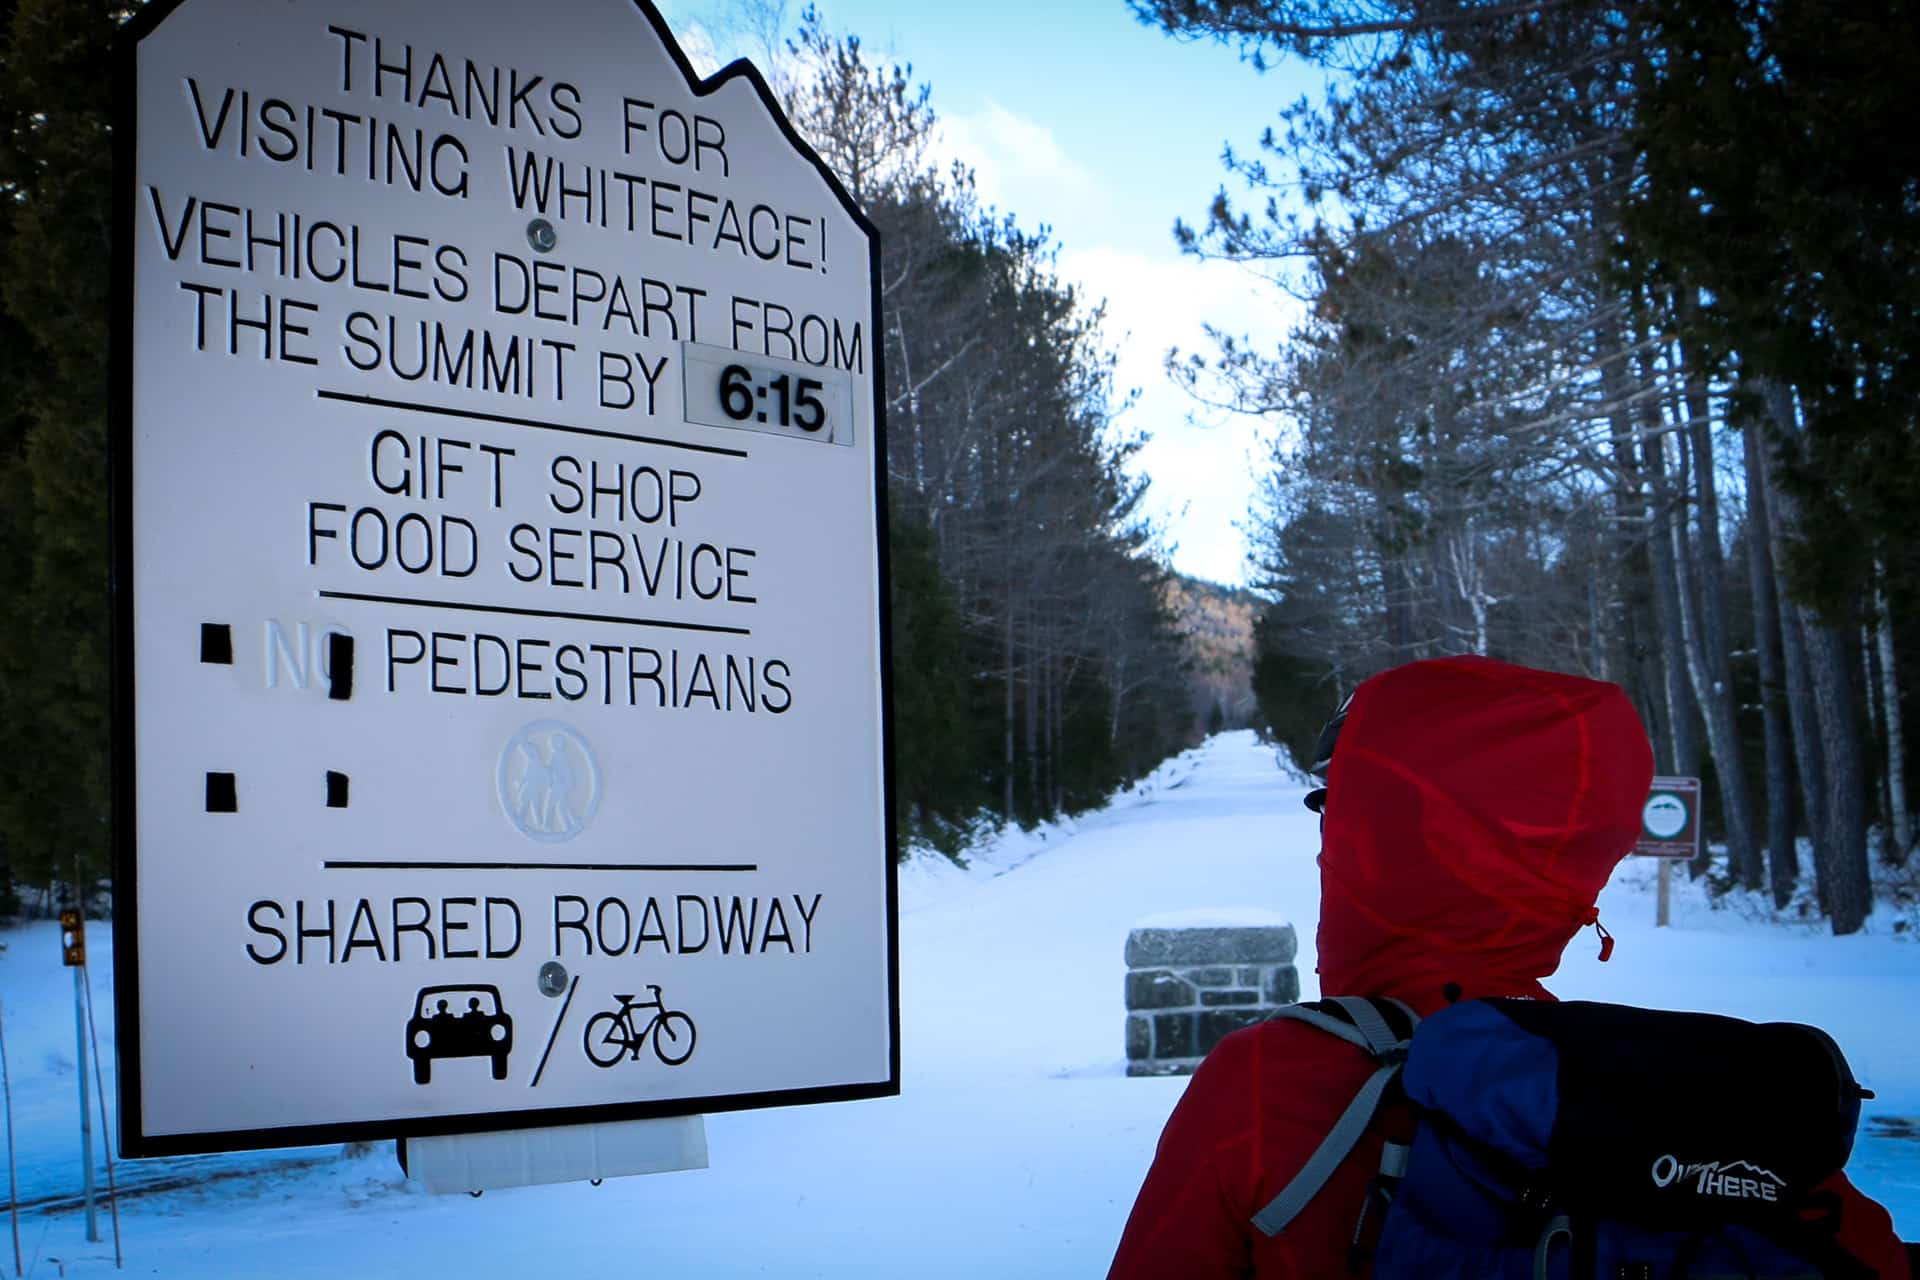 A cyclist starring at the sign at the bottom of the memorial highway going up whiteface mountain